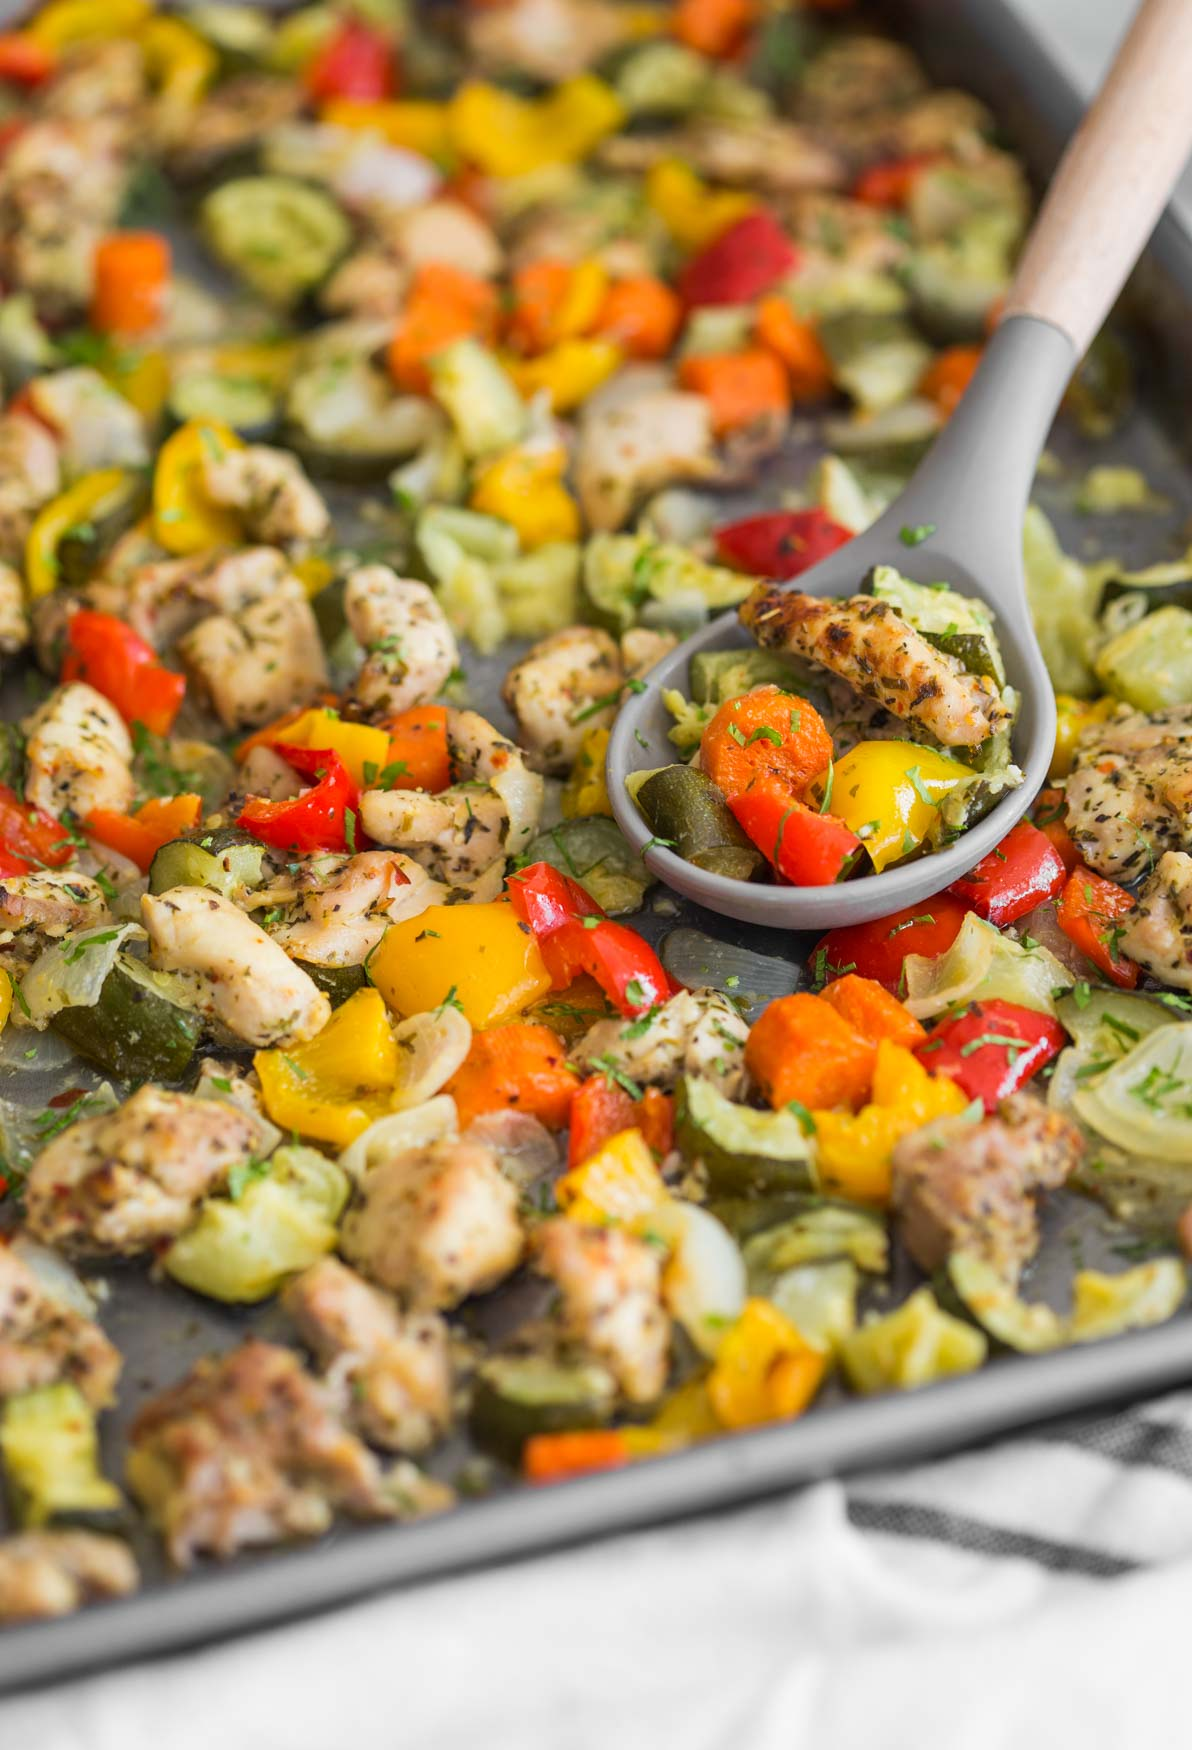 One-pan baked chicken and vegetables in a baking tray ready to serve